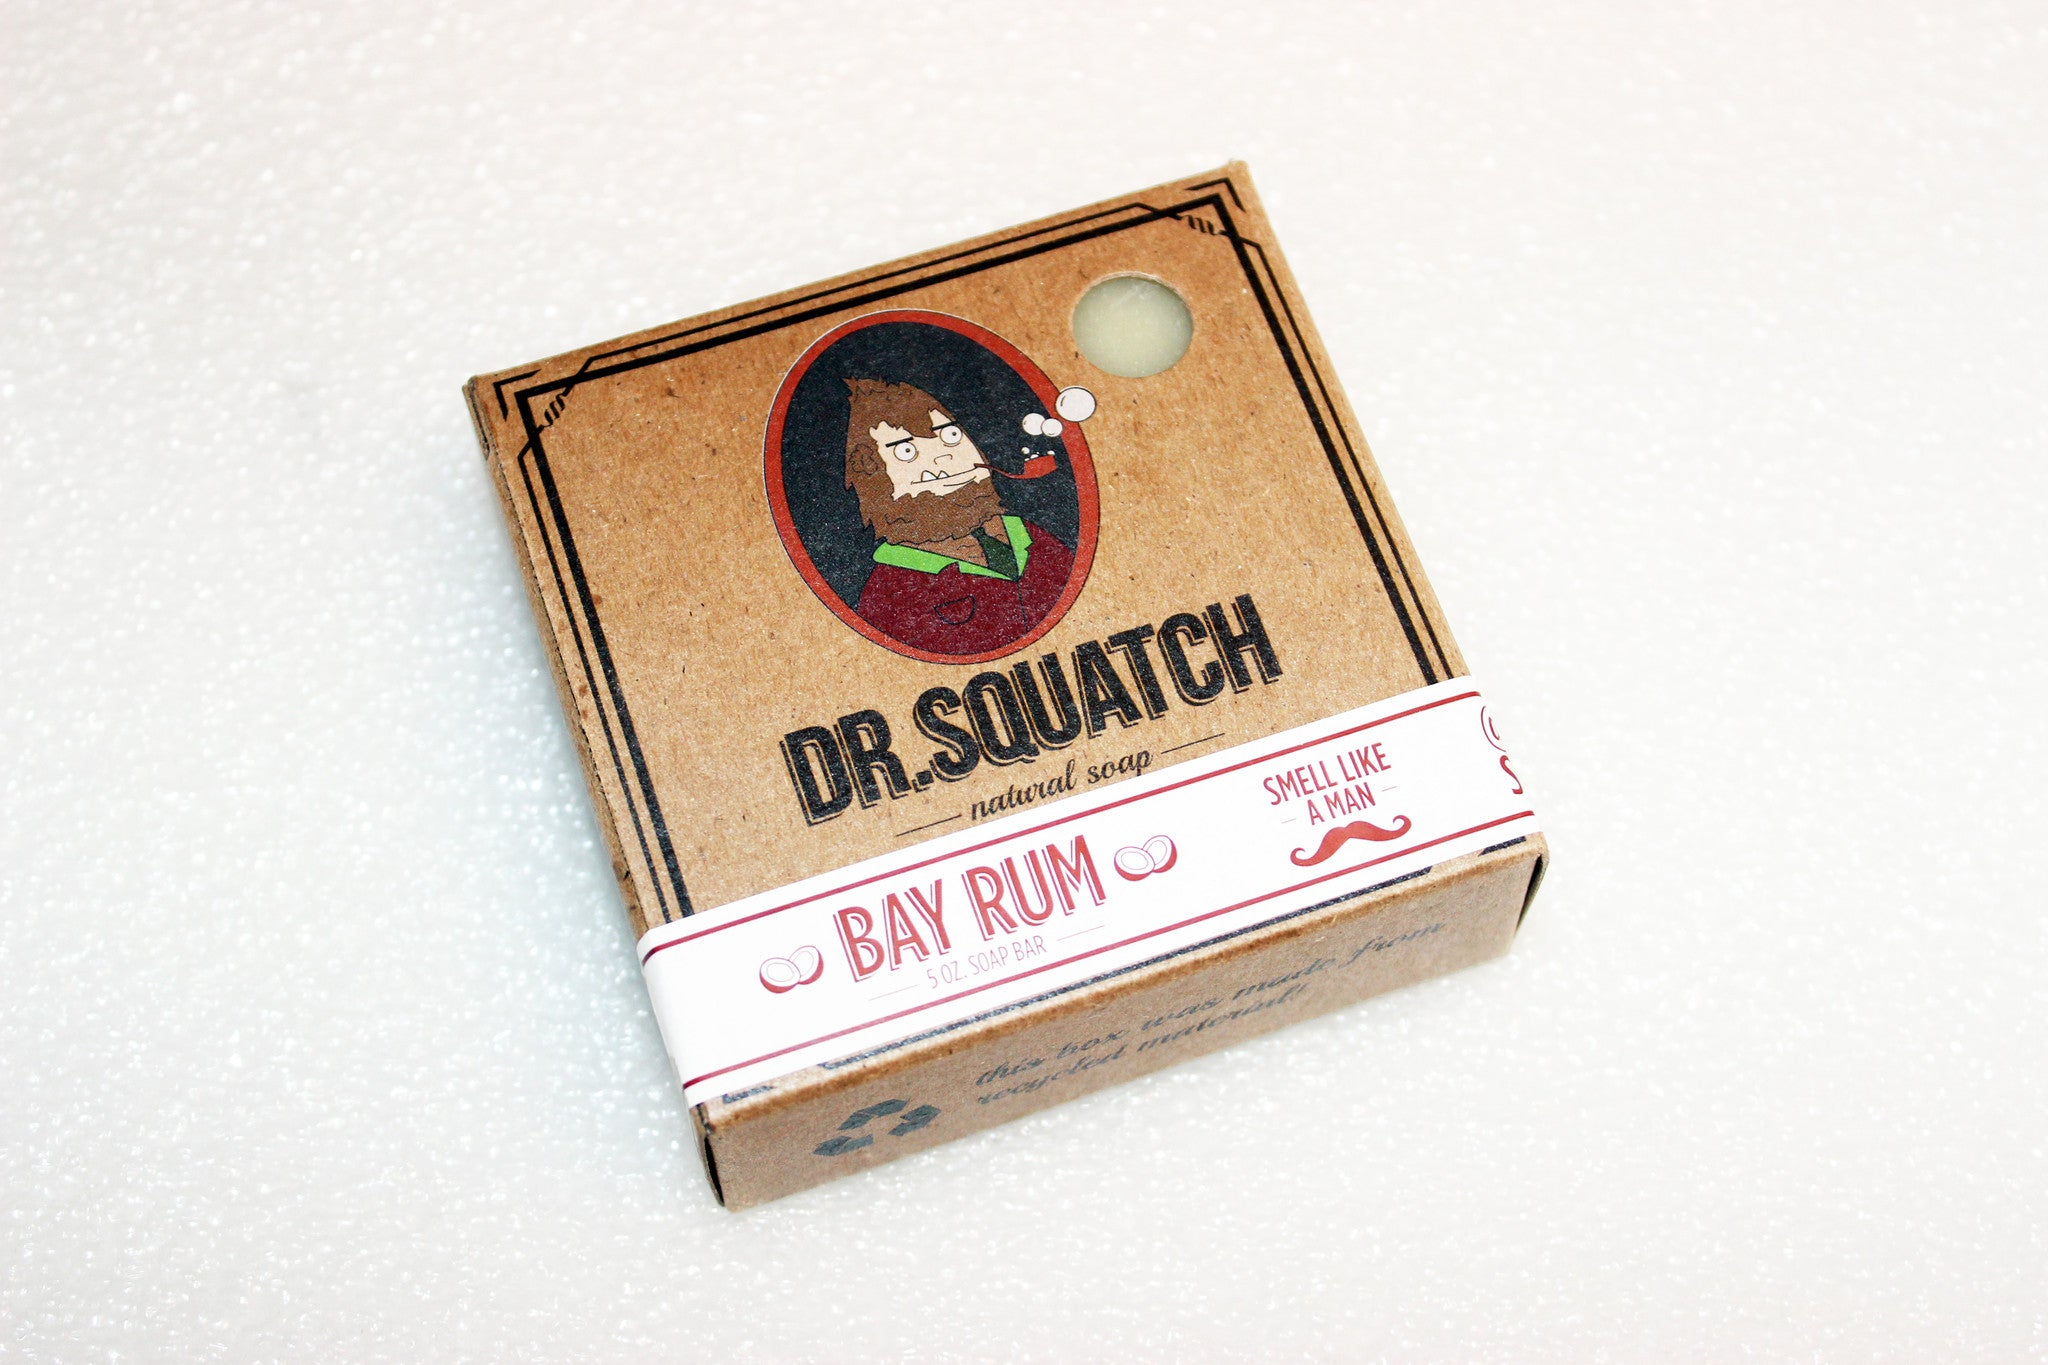 Dr. Squatch Bay Rum Soap packaging